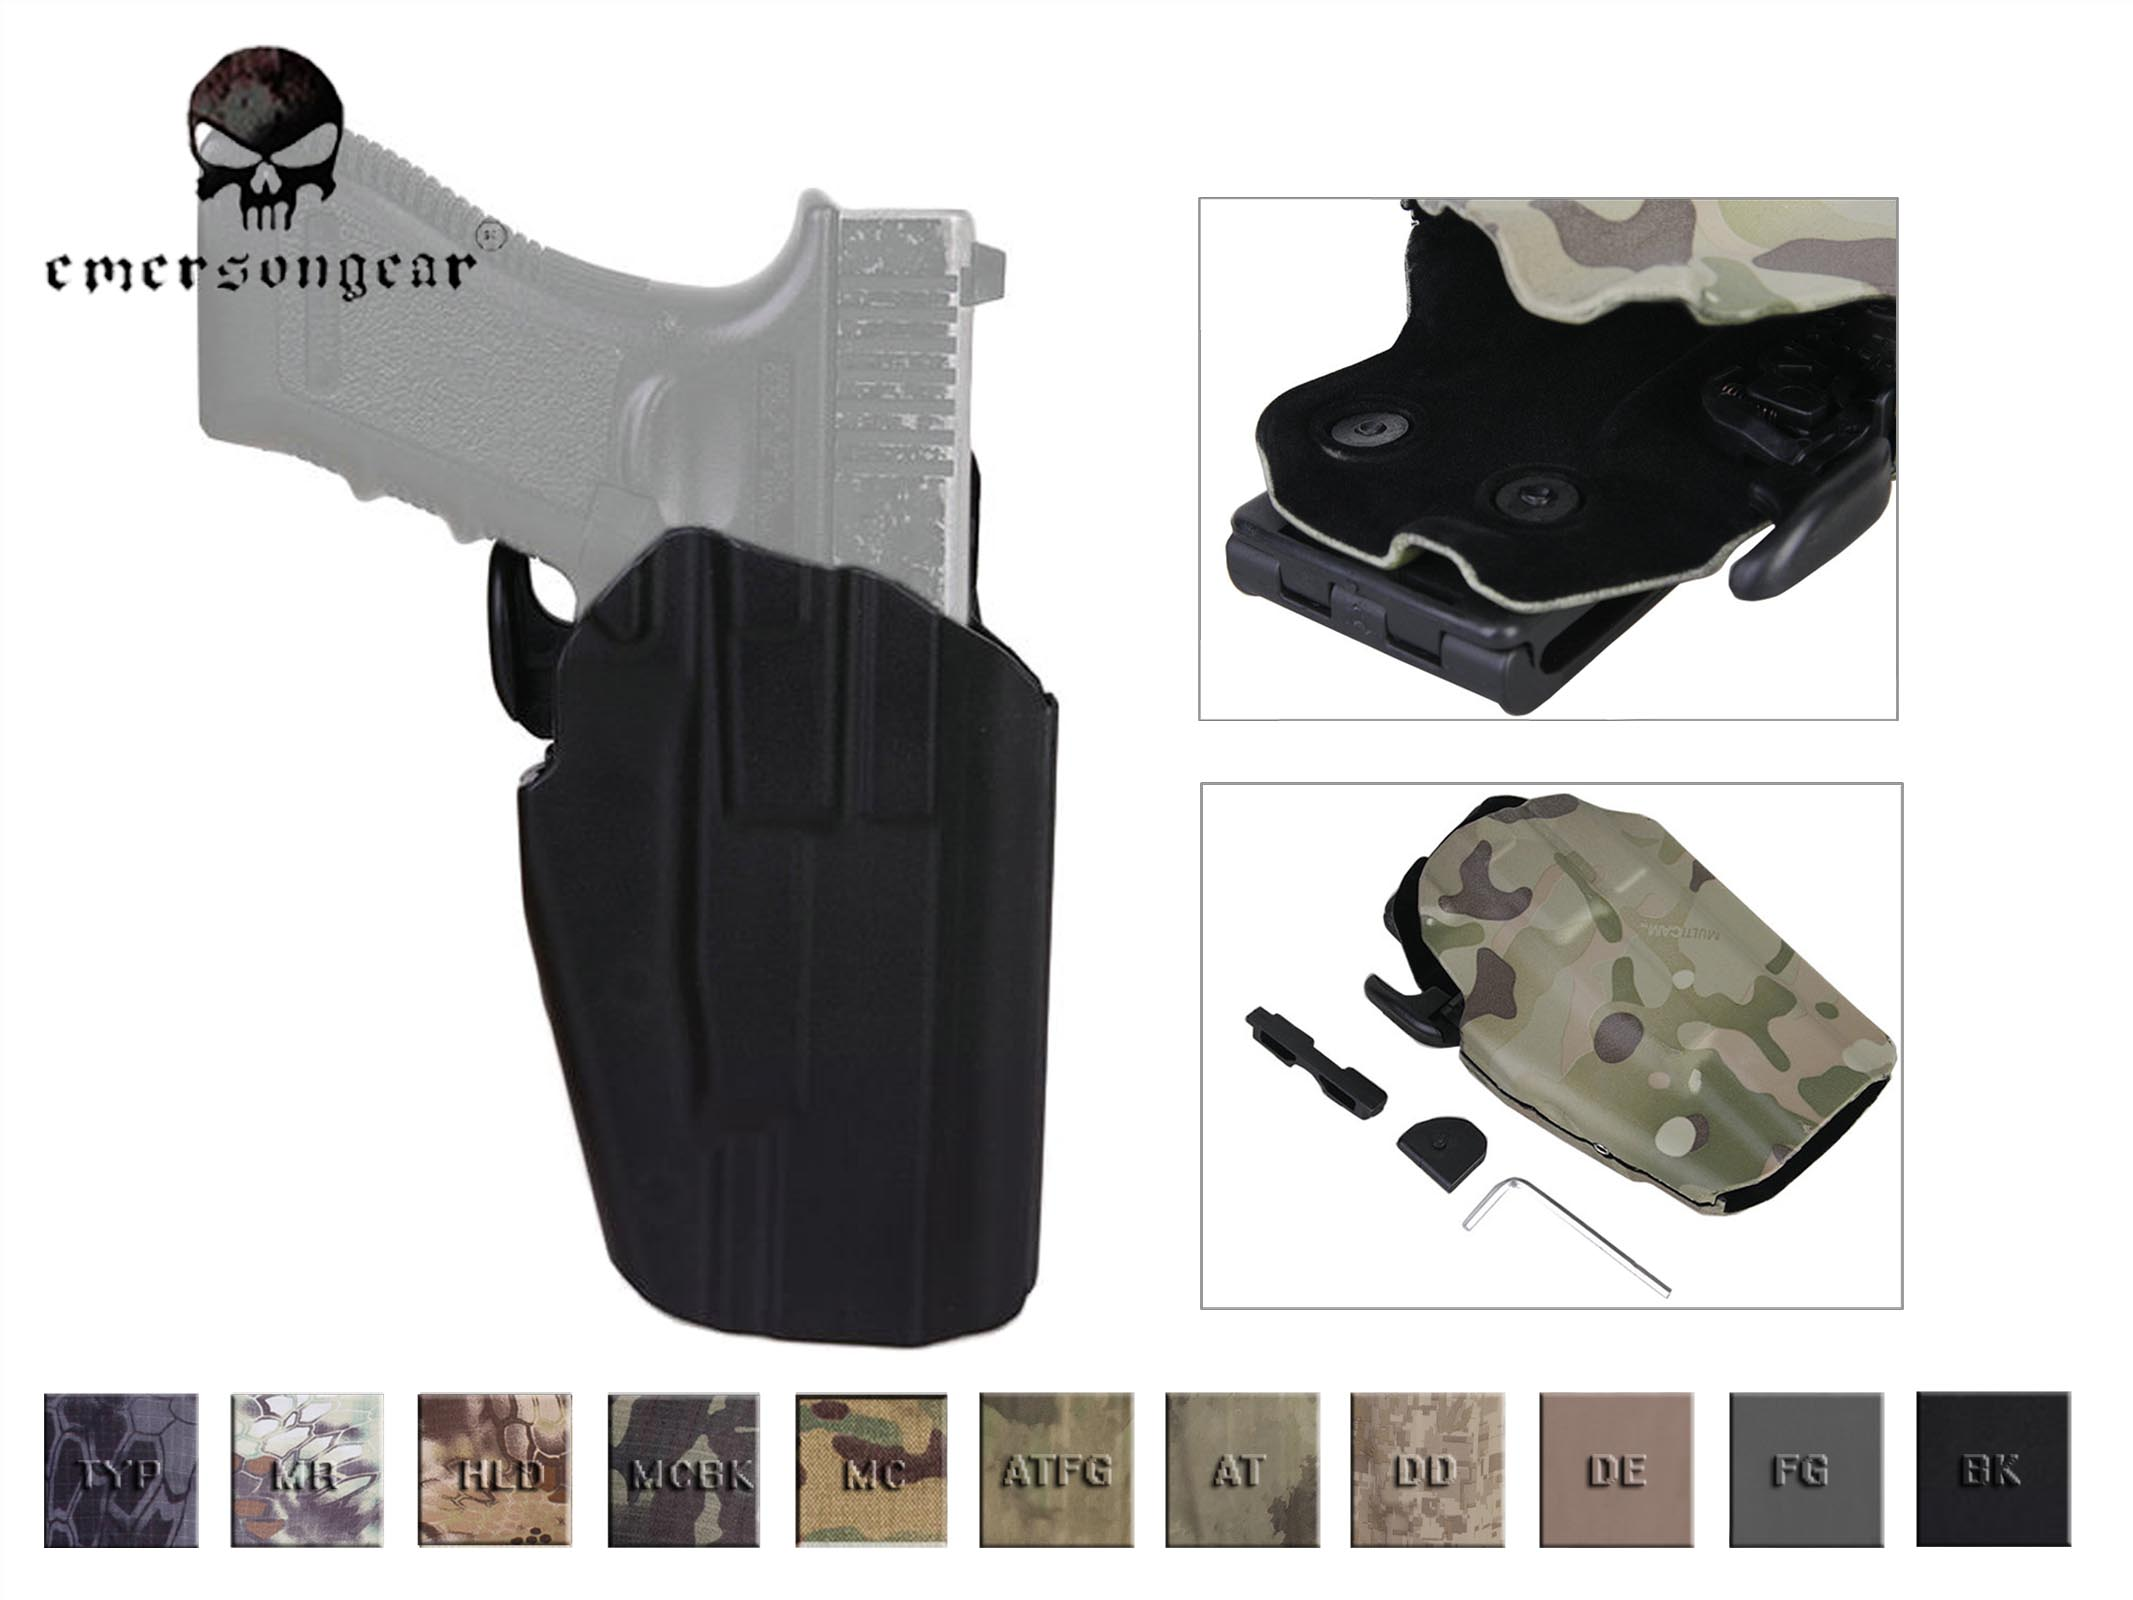 US $19 95 |EmersonGear RightHand 579 Gls Pro Fit Holster WALTHER PPQ M2  9/40 Can Fit 100 More Gun Type EM6284-in Holsters from Sports &  Entertainment